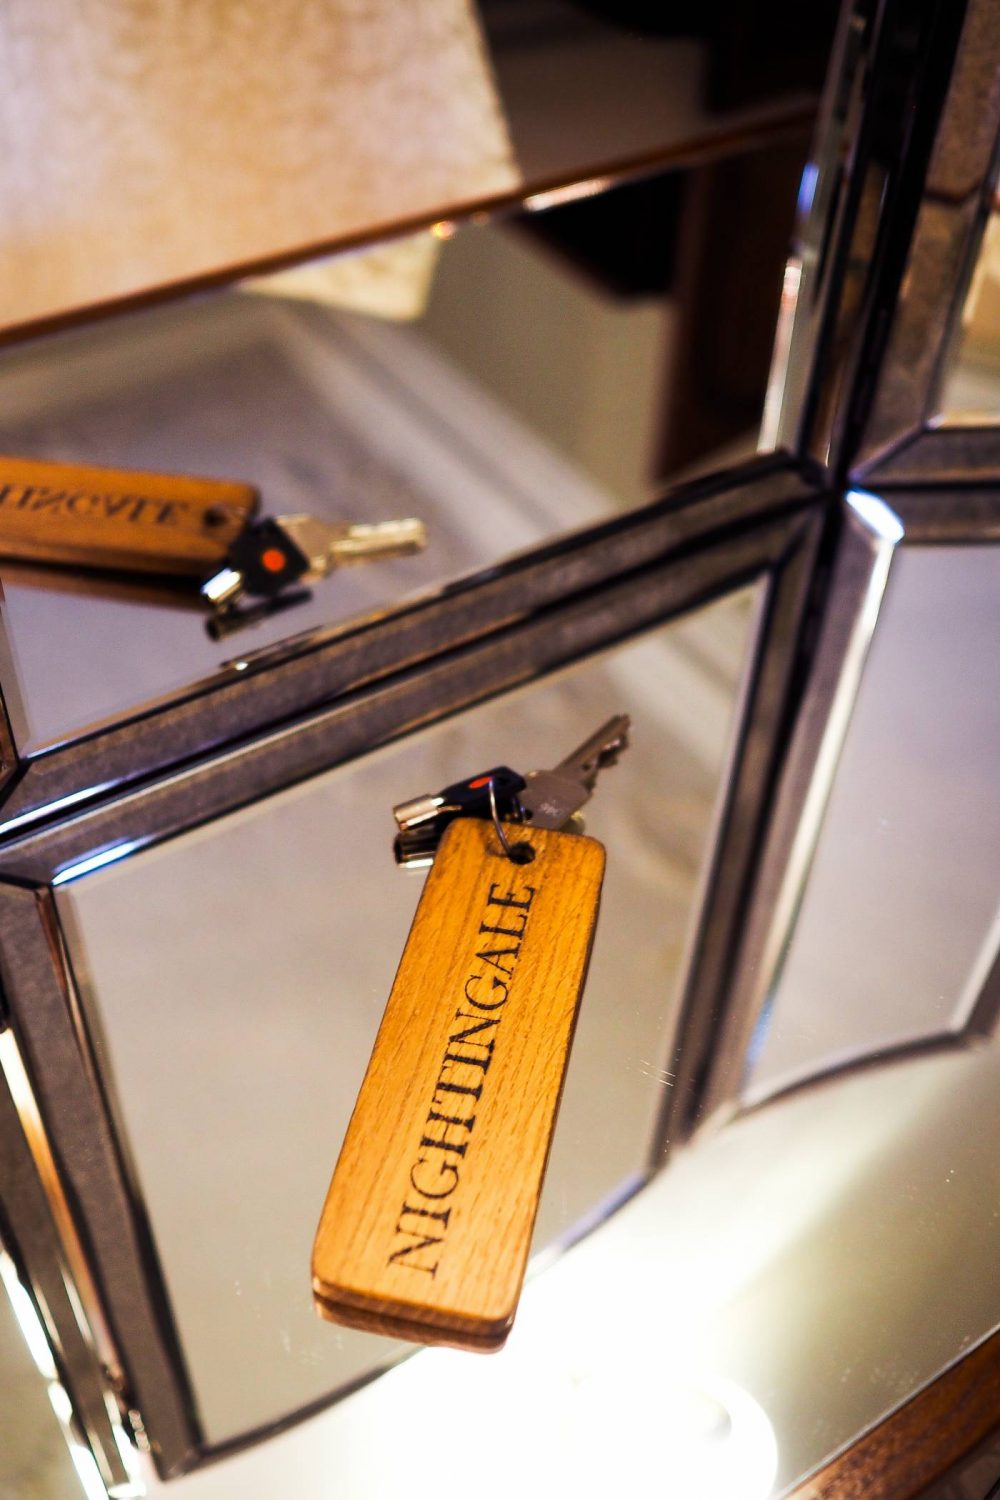 Wooden key tag that says 'Nightingale' on a mirrored dressing table